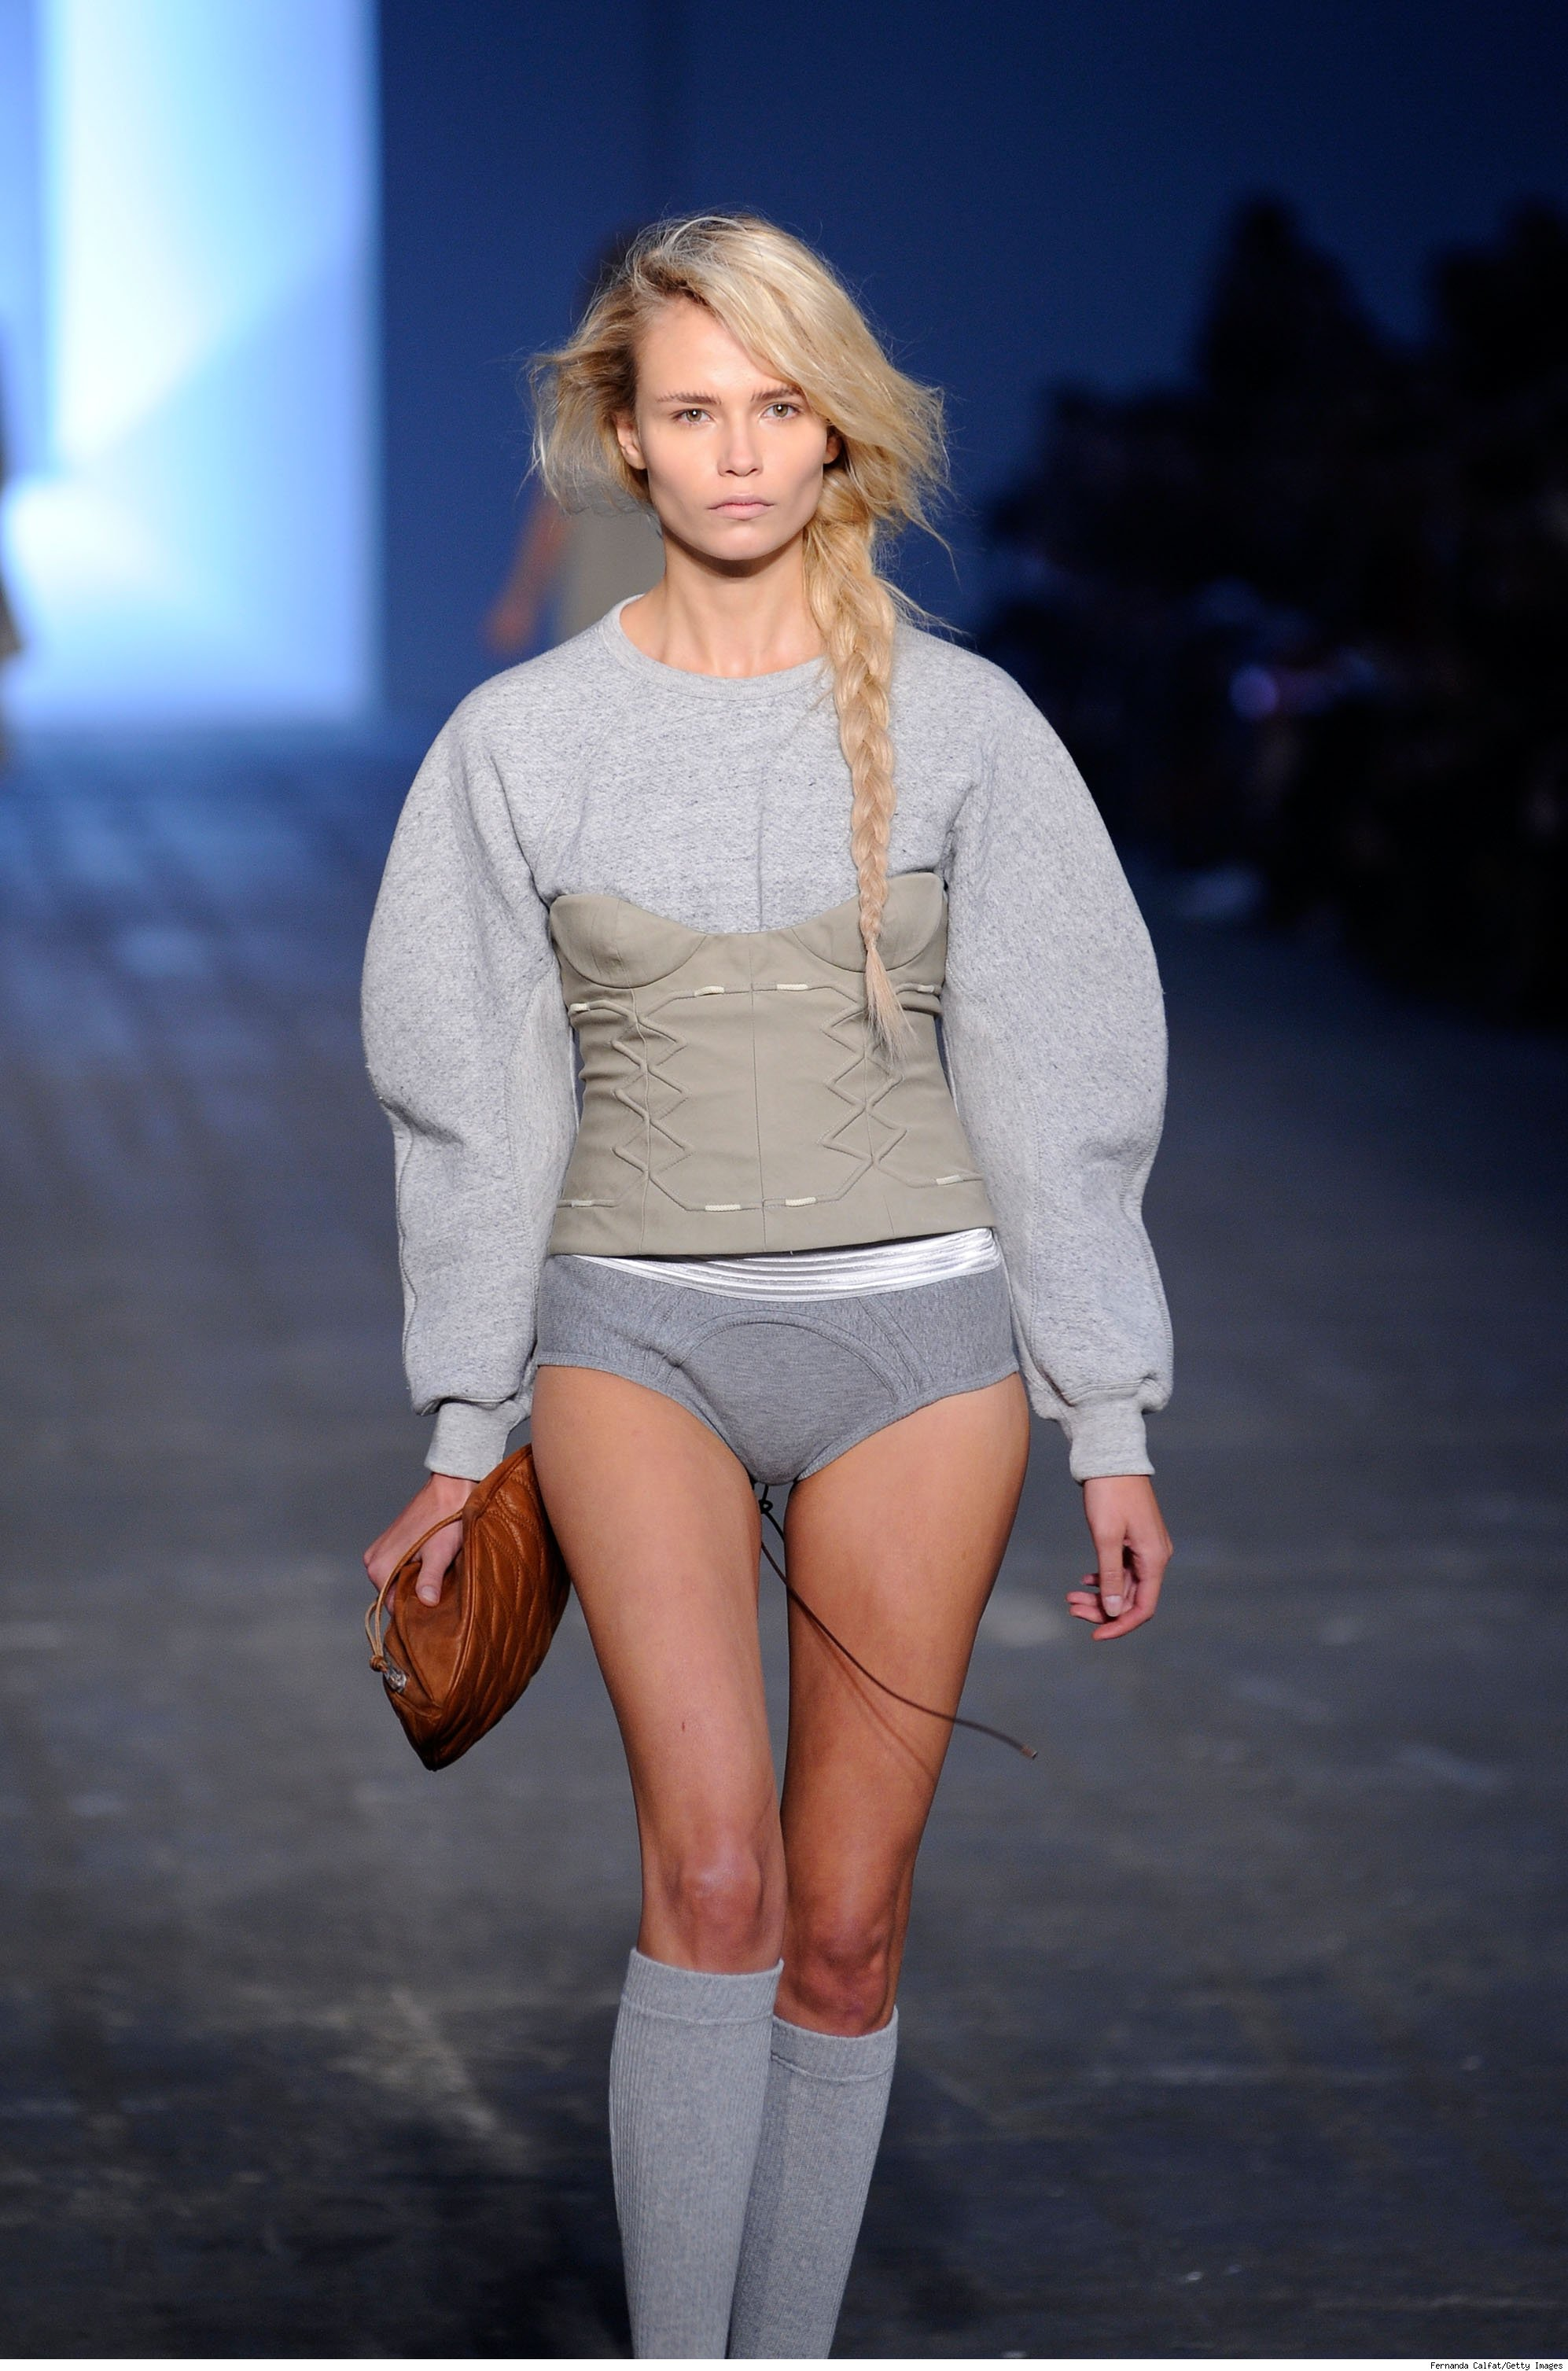 Alexander Wang - Runway - Spring 2010 MBFW 